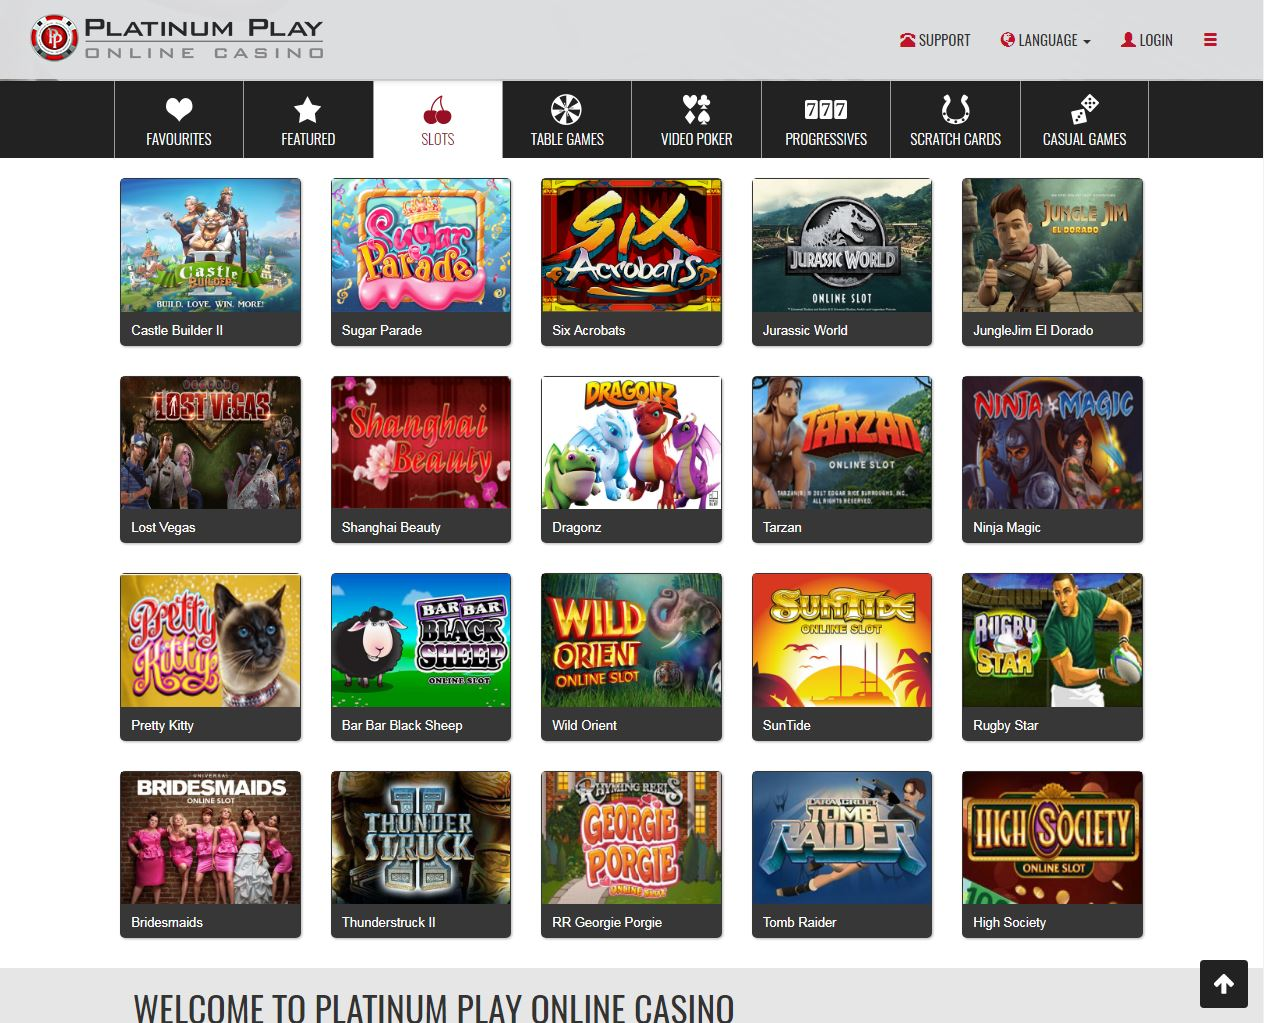 Platinum play casino online chat casino in waveland mississippi